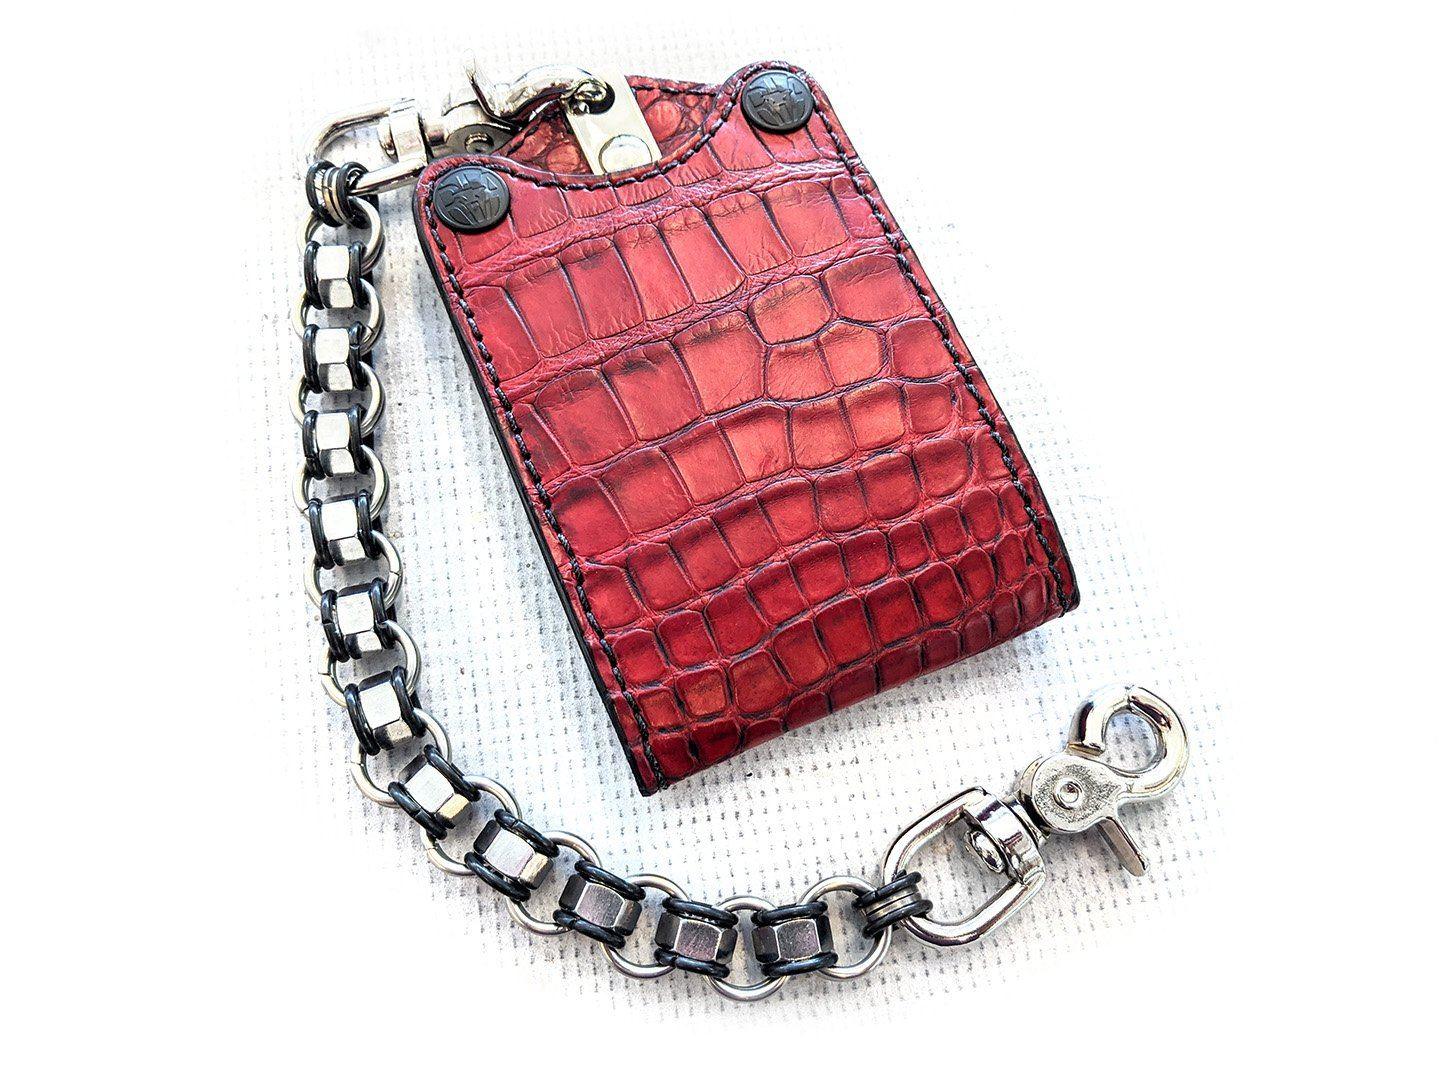 Bifold Leather Chain Wallet - Dragon's Blood Red Alligator